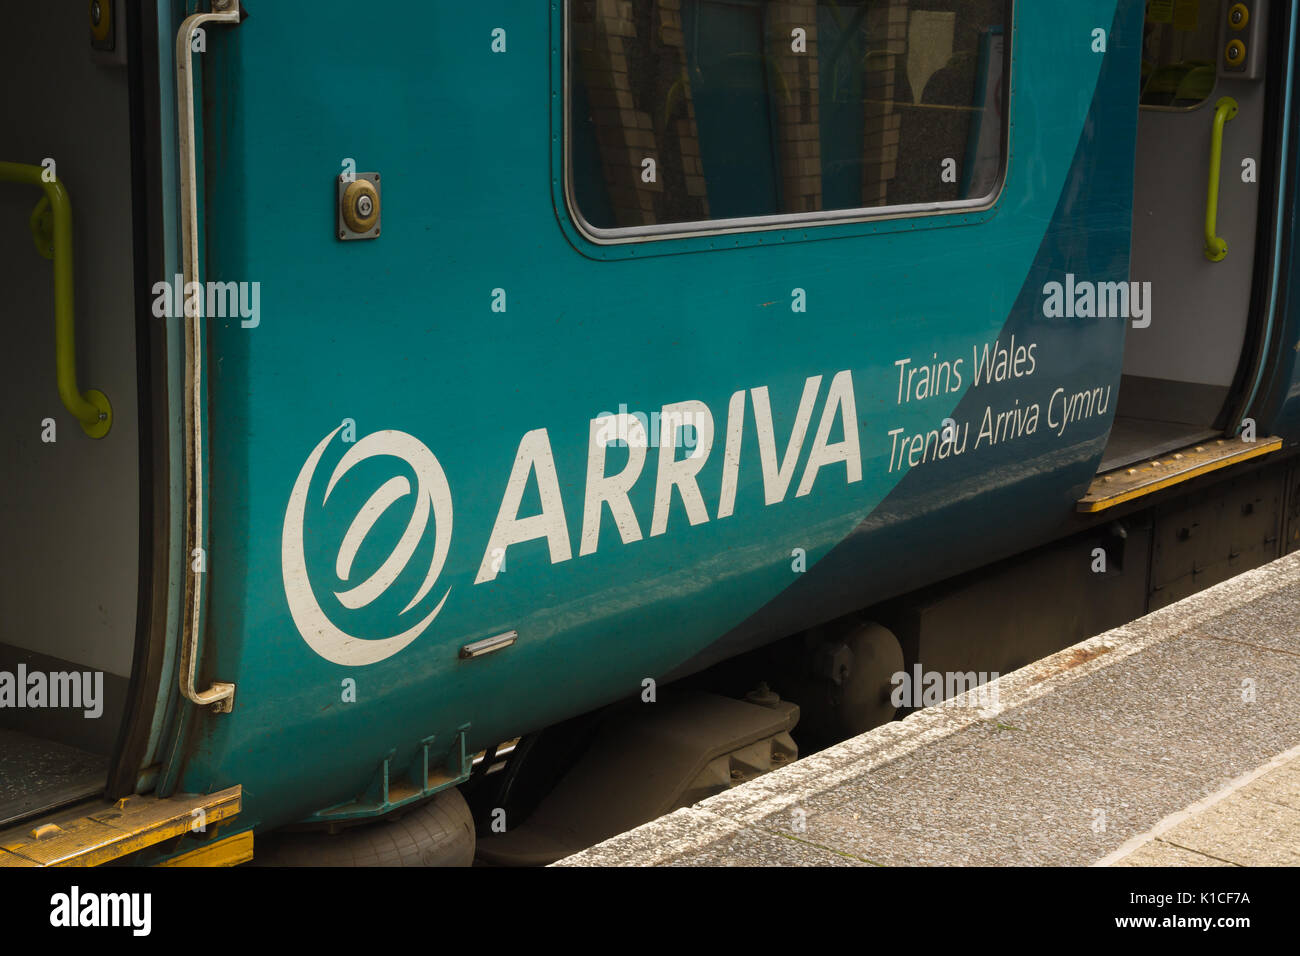 Arriva Trains Wales or Trenau Arriva Cymru logo on passenger train the company provides bus and rail services throughout Stock Photo